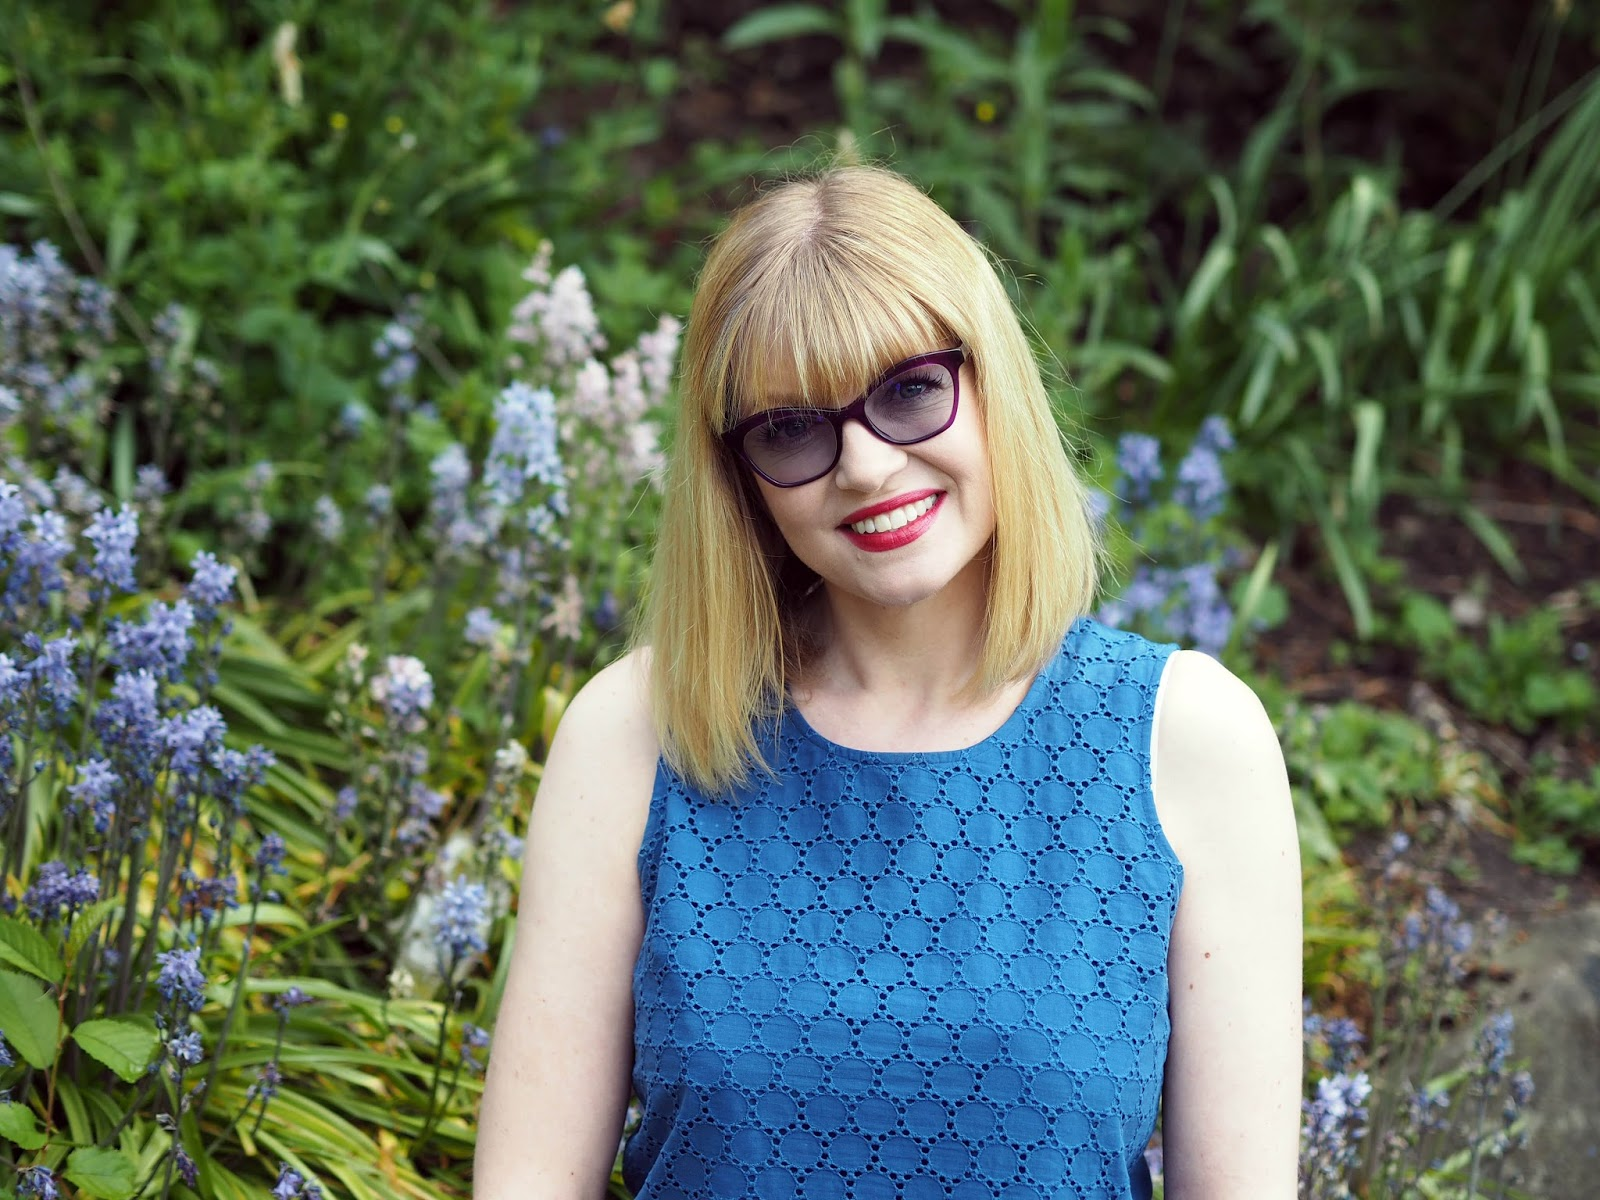 What-Lizzy-Loves-wearing-purple-Caroline-Abram-frames-Style-Colours-photochromic-lsunglasses-lenses-sapphire-blue